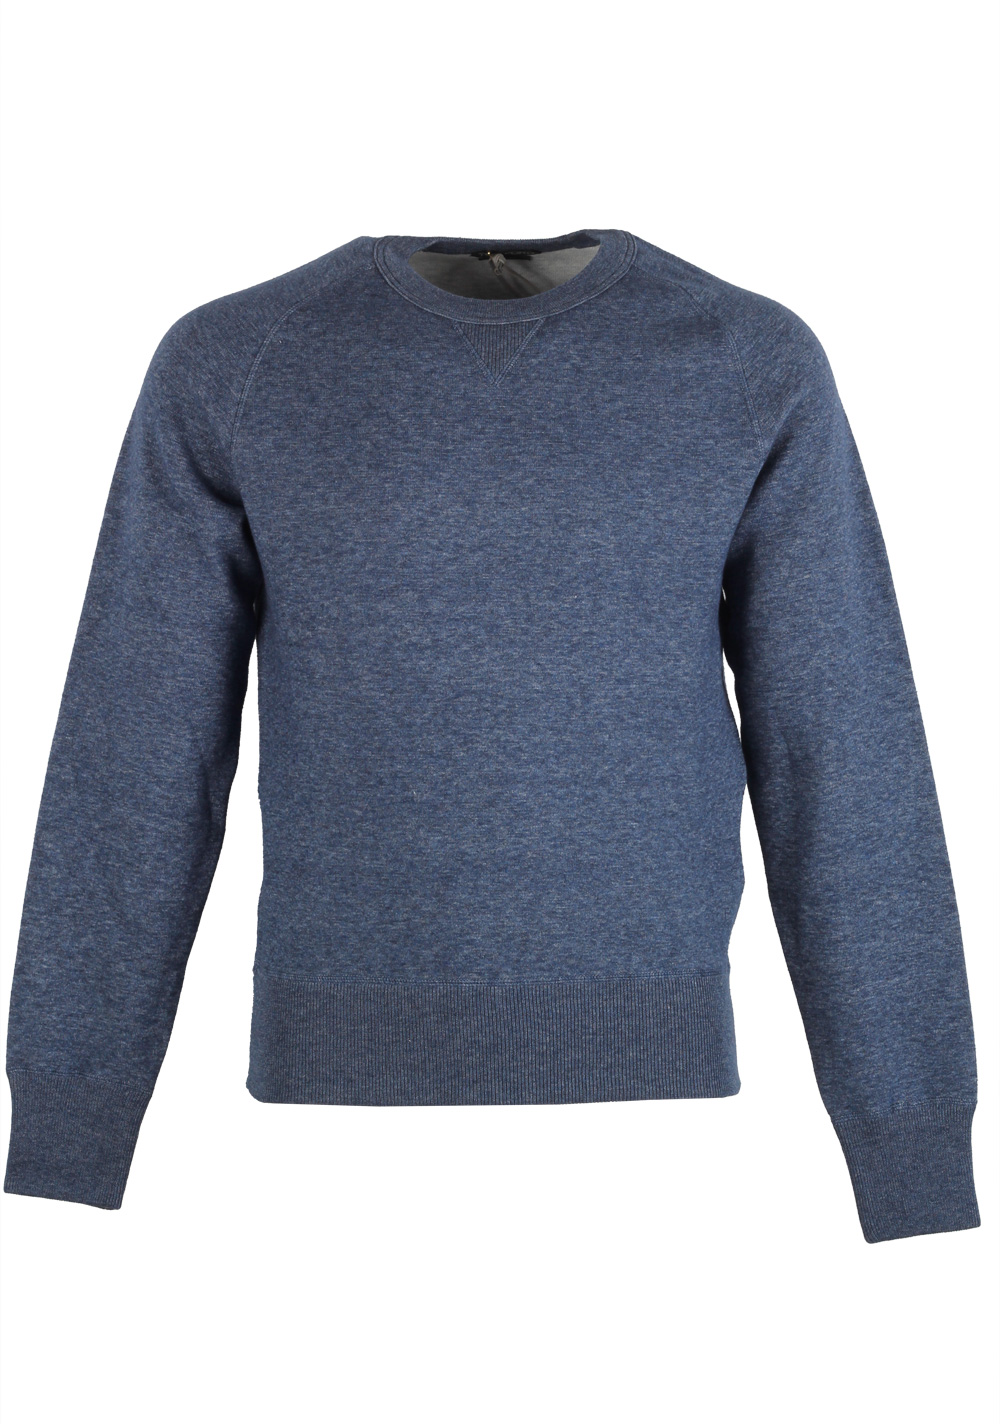 TOM FORD Blue Crew Neck Jersey Sweater Size 48 / 38R U.S. In Cotton | Costume Limité